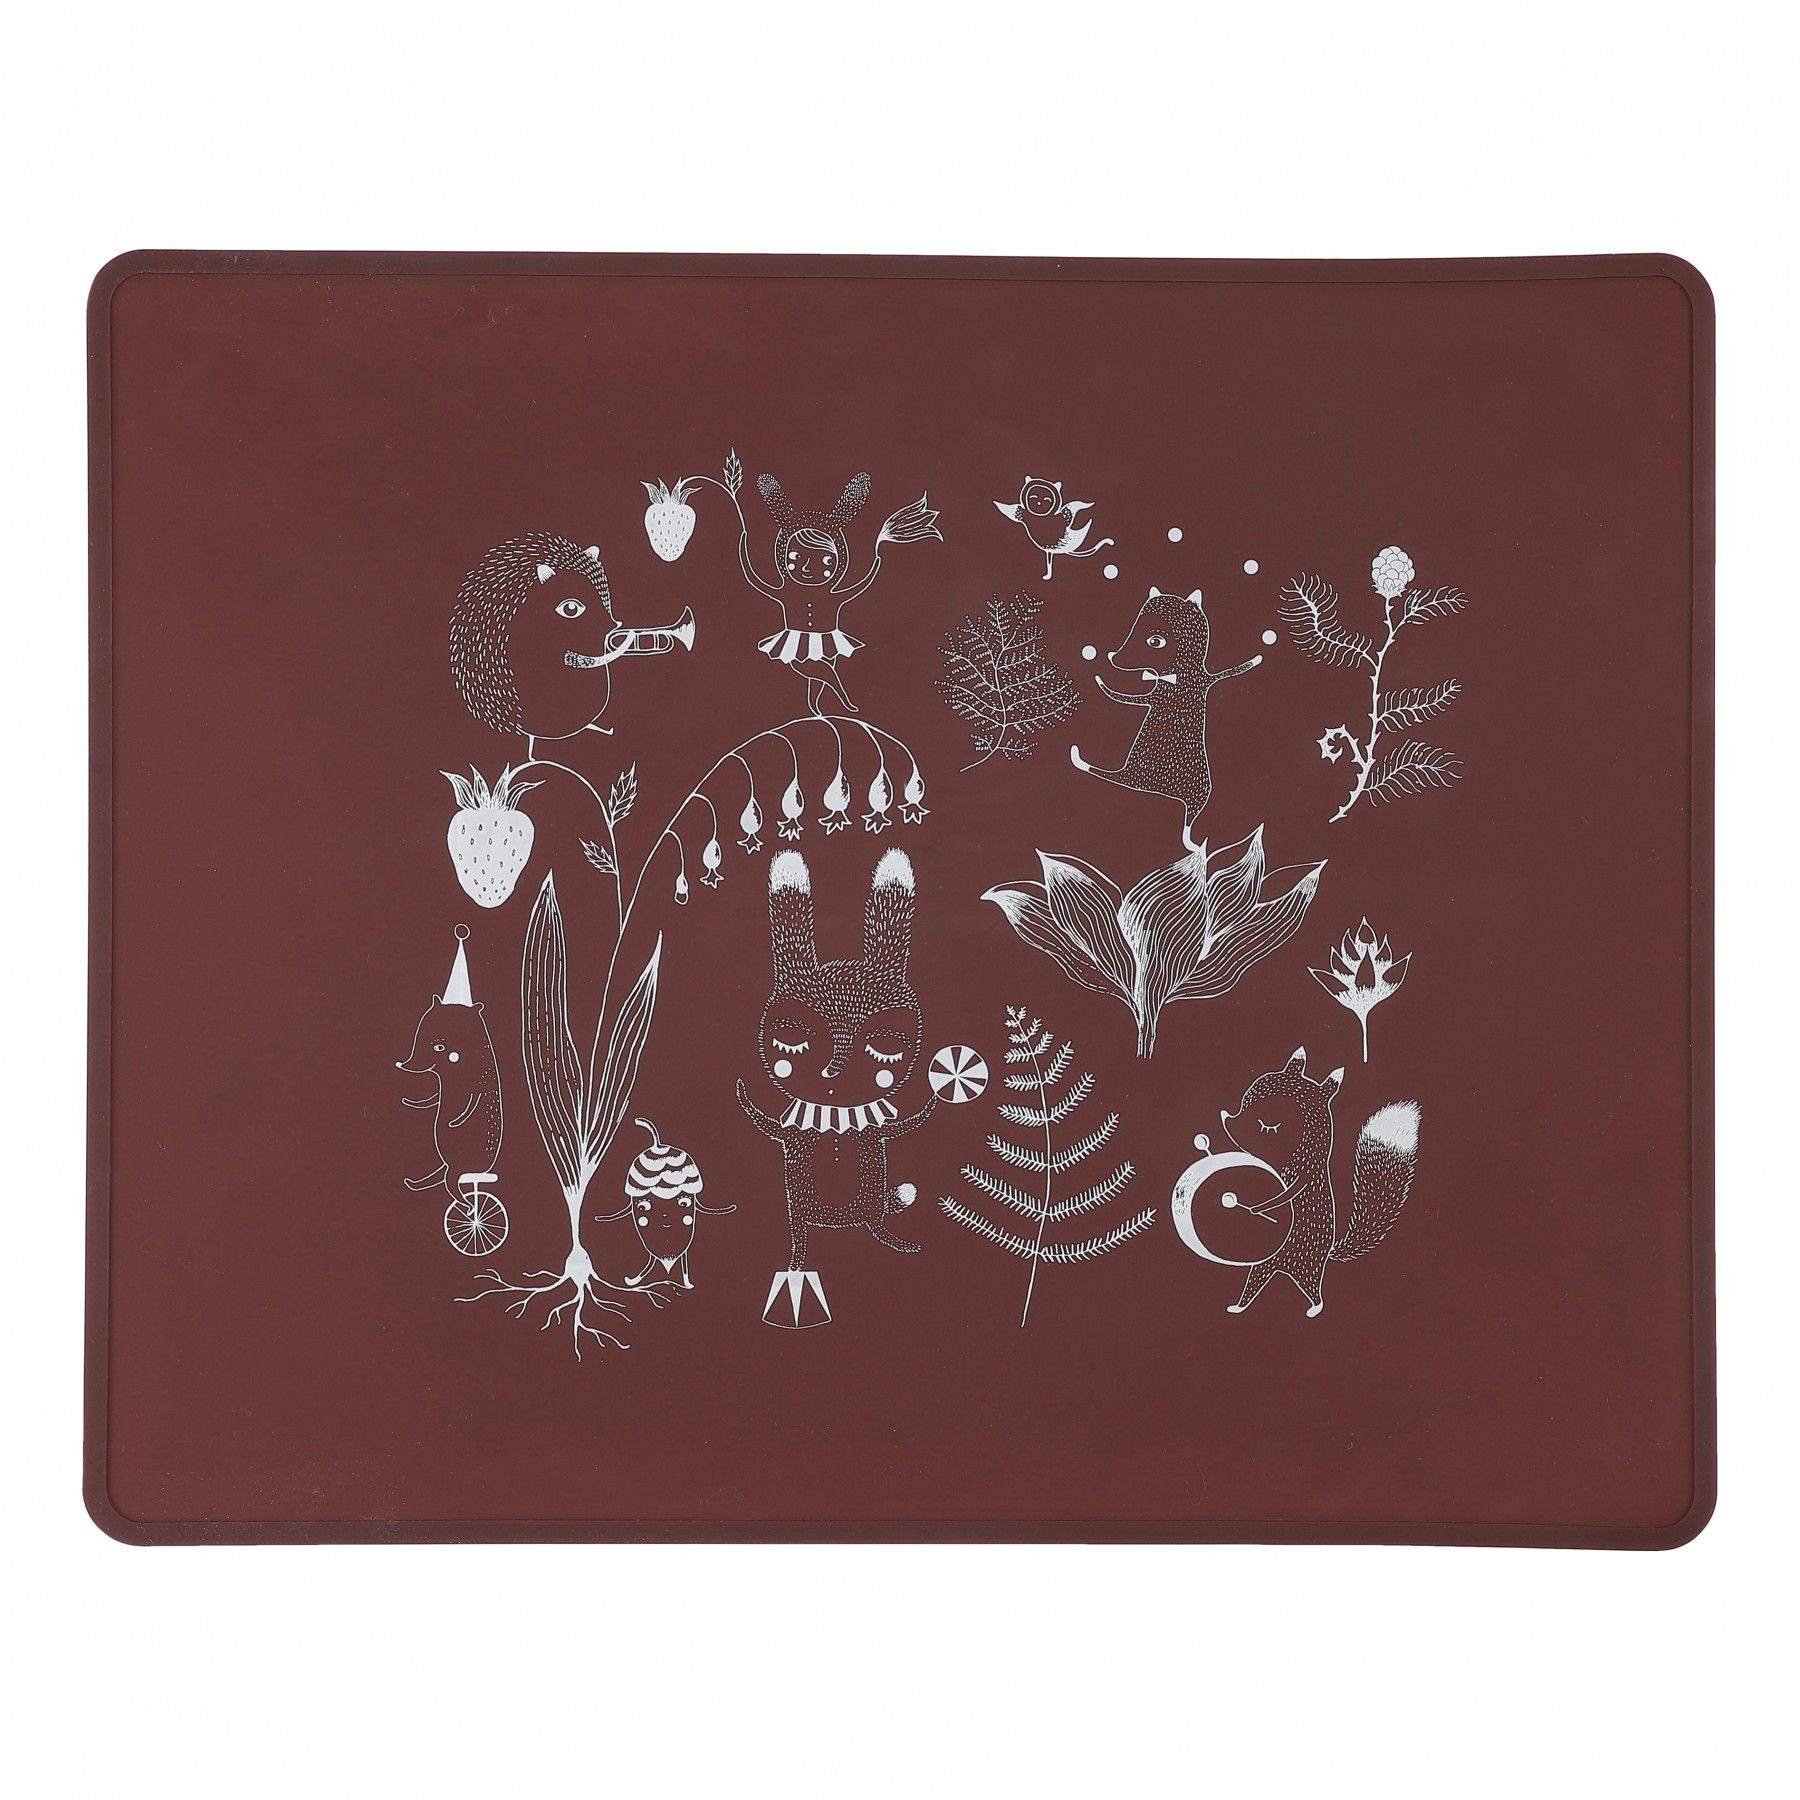 by lille vilde placemat - rood | ilovespeelgoed.nl